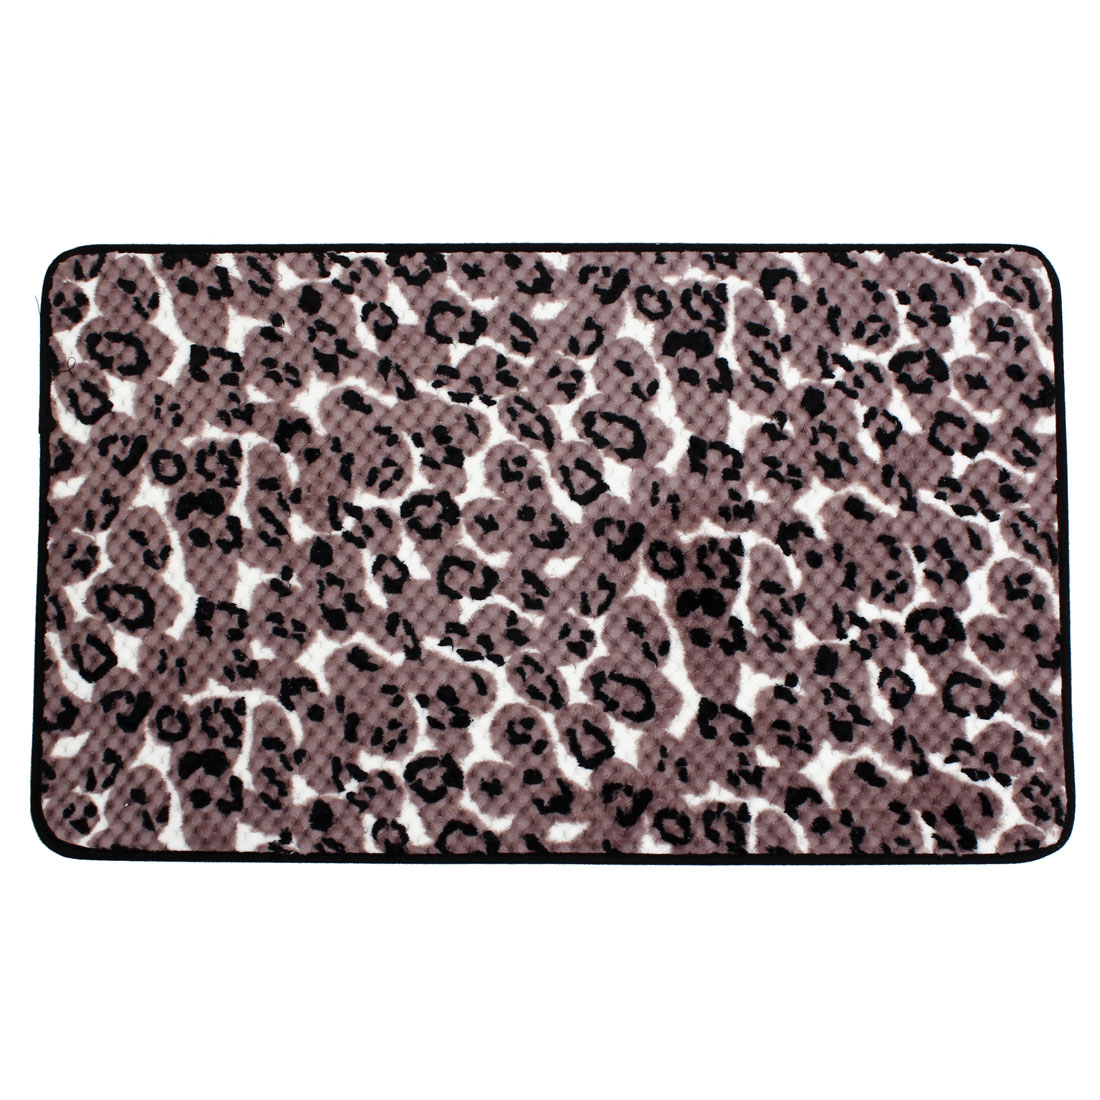 Rosy Brown Black Leopard Print Antislip Floor Mat Area Rug Carpet 80cm x 50cm